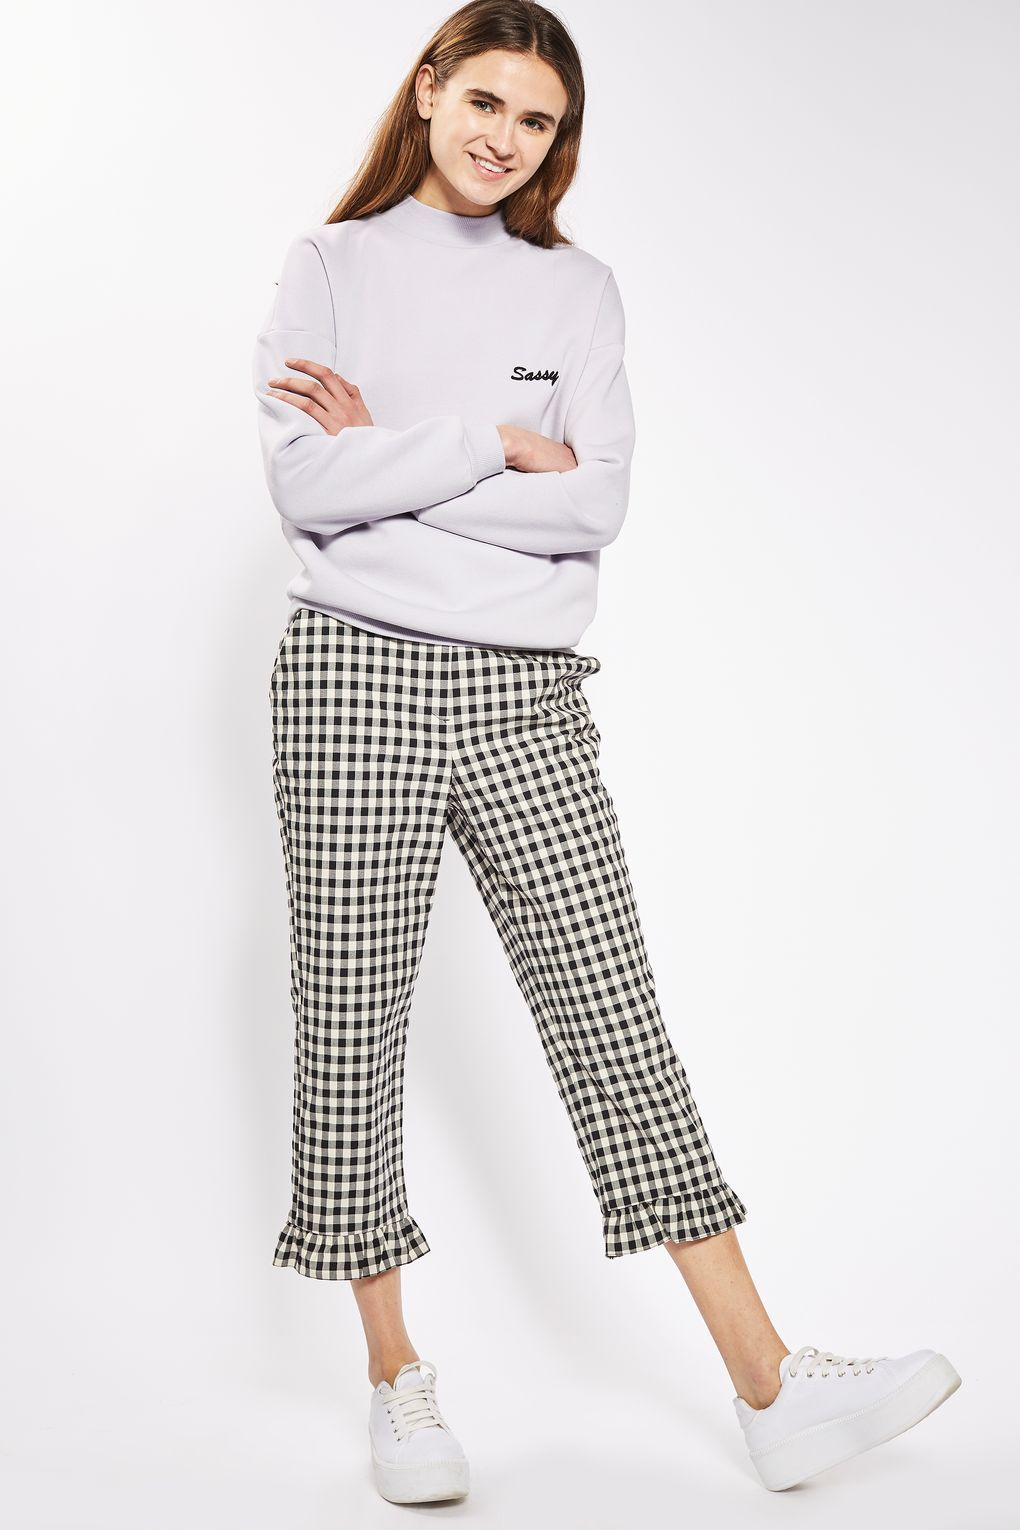 e9965938ba5a Gingham Frill Hem Trousers in 2019 | Bottoms | Trousers, Fashion ...